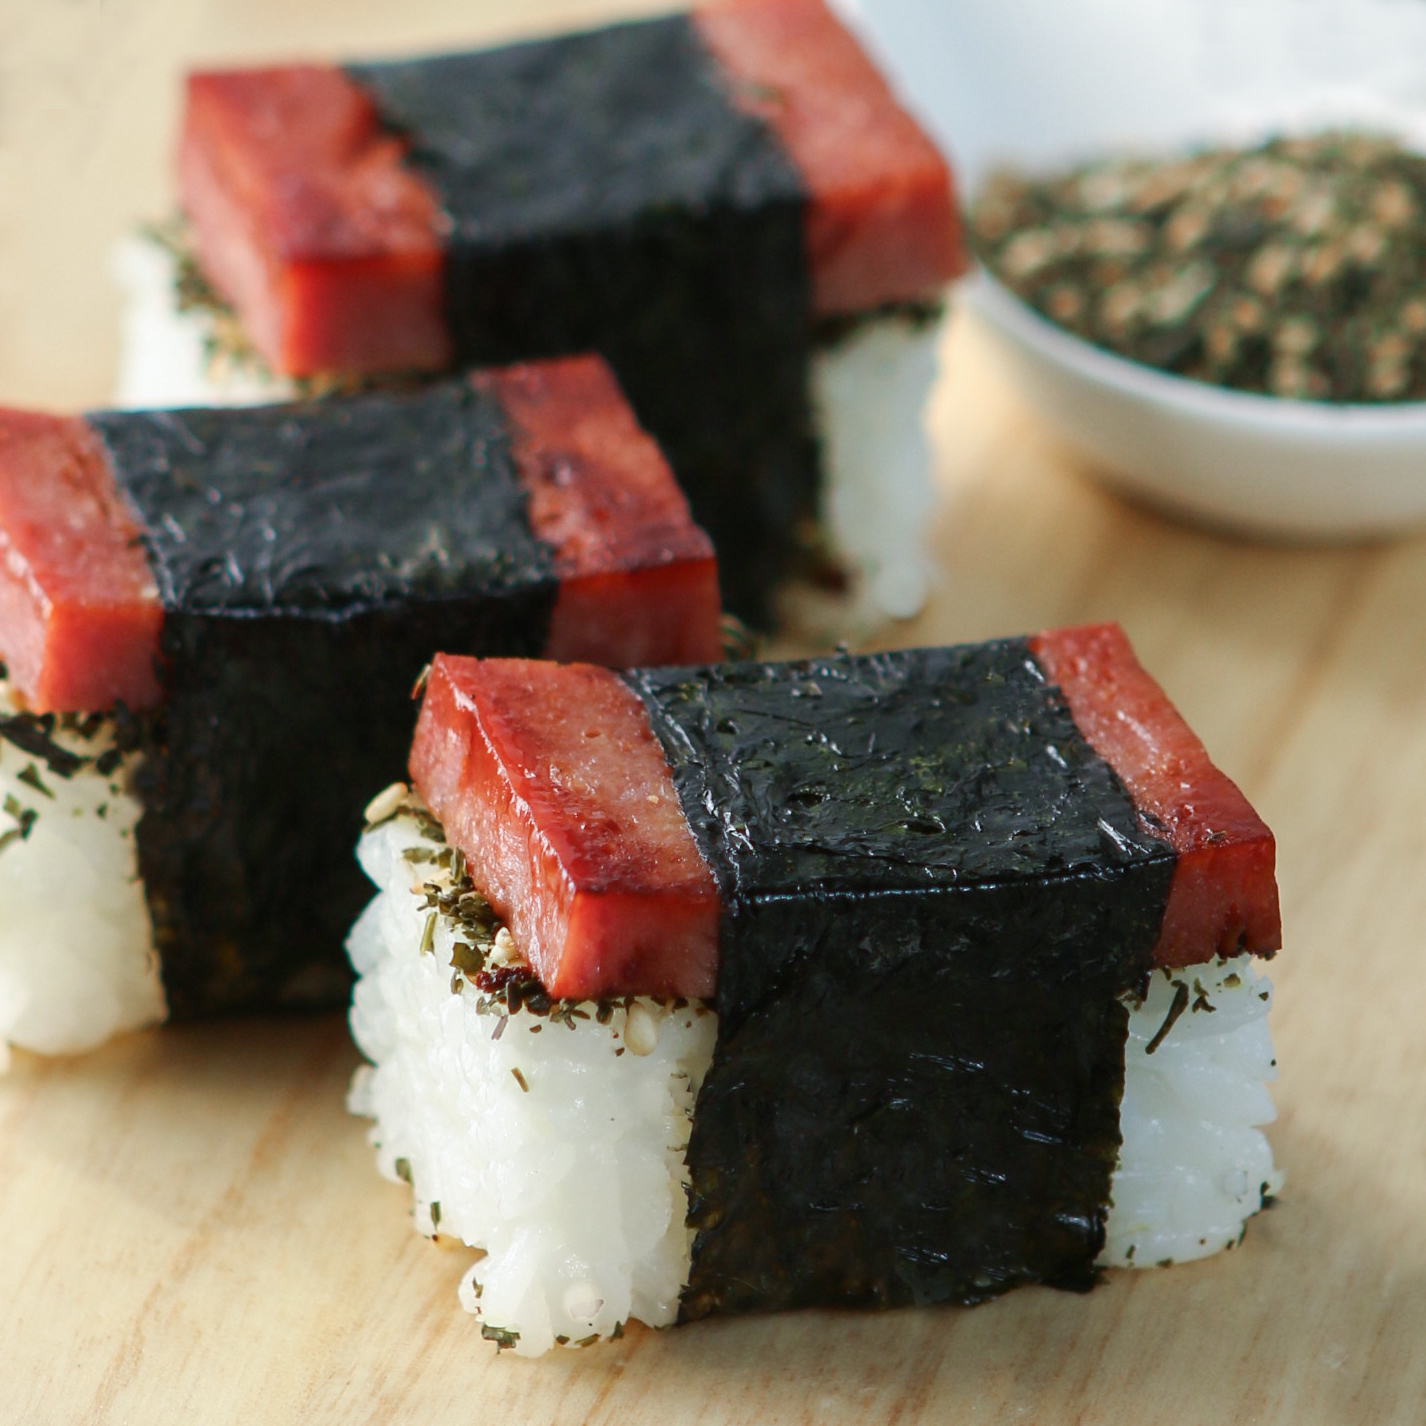 http://www.thirstyfortea.com/wp-content/uploads/2014/05/spam-musubi-4-4.jpg